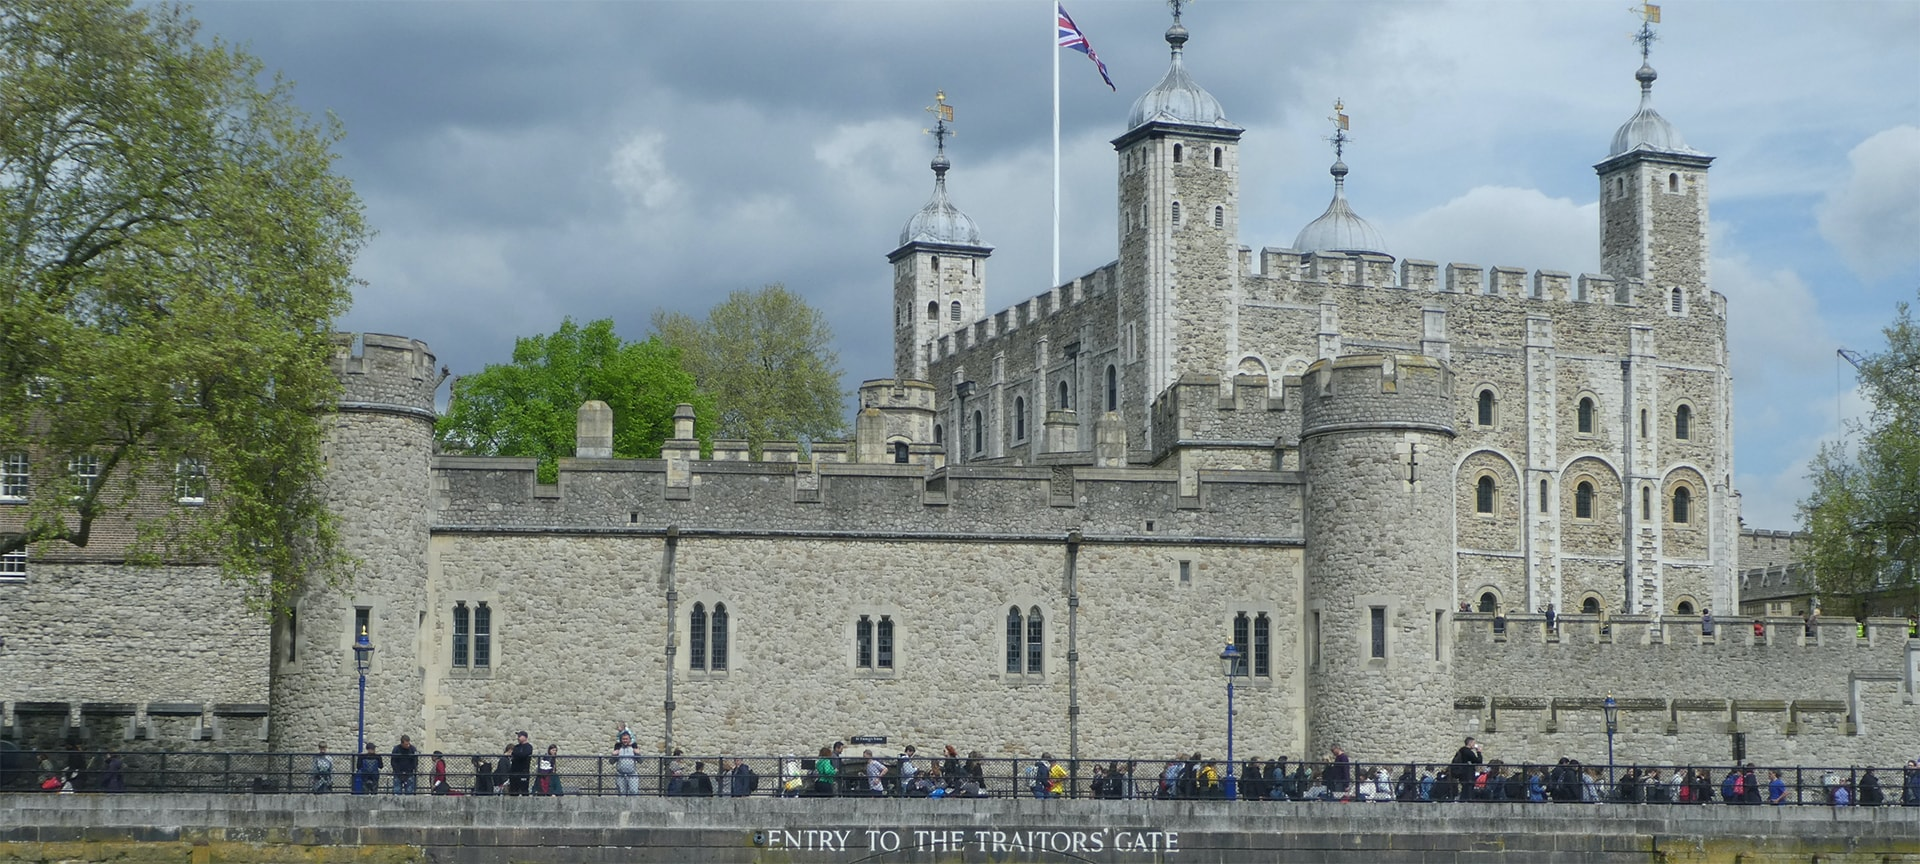 For centuries, British prisoners accused of treason had a special, particularly horrifying route by which they were taken into the Tower of London. Traitors' Gate was originally called Water Gate, because that is what it was, a means for King Edward I and other royals to get into St. Thomas's Tower by water. When the gate was built in the late 1270s, along the River Thames, the tower was a residence for the royal family. Over time, the Tower of London was more and more commonly used as a prison for those accused of treason against the crown, and those prisoners were brought to the tower by water. The first known use of the name